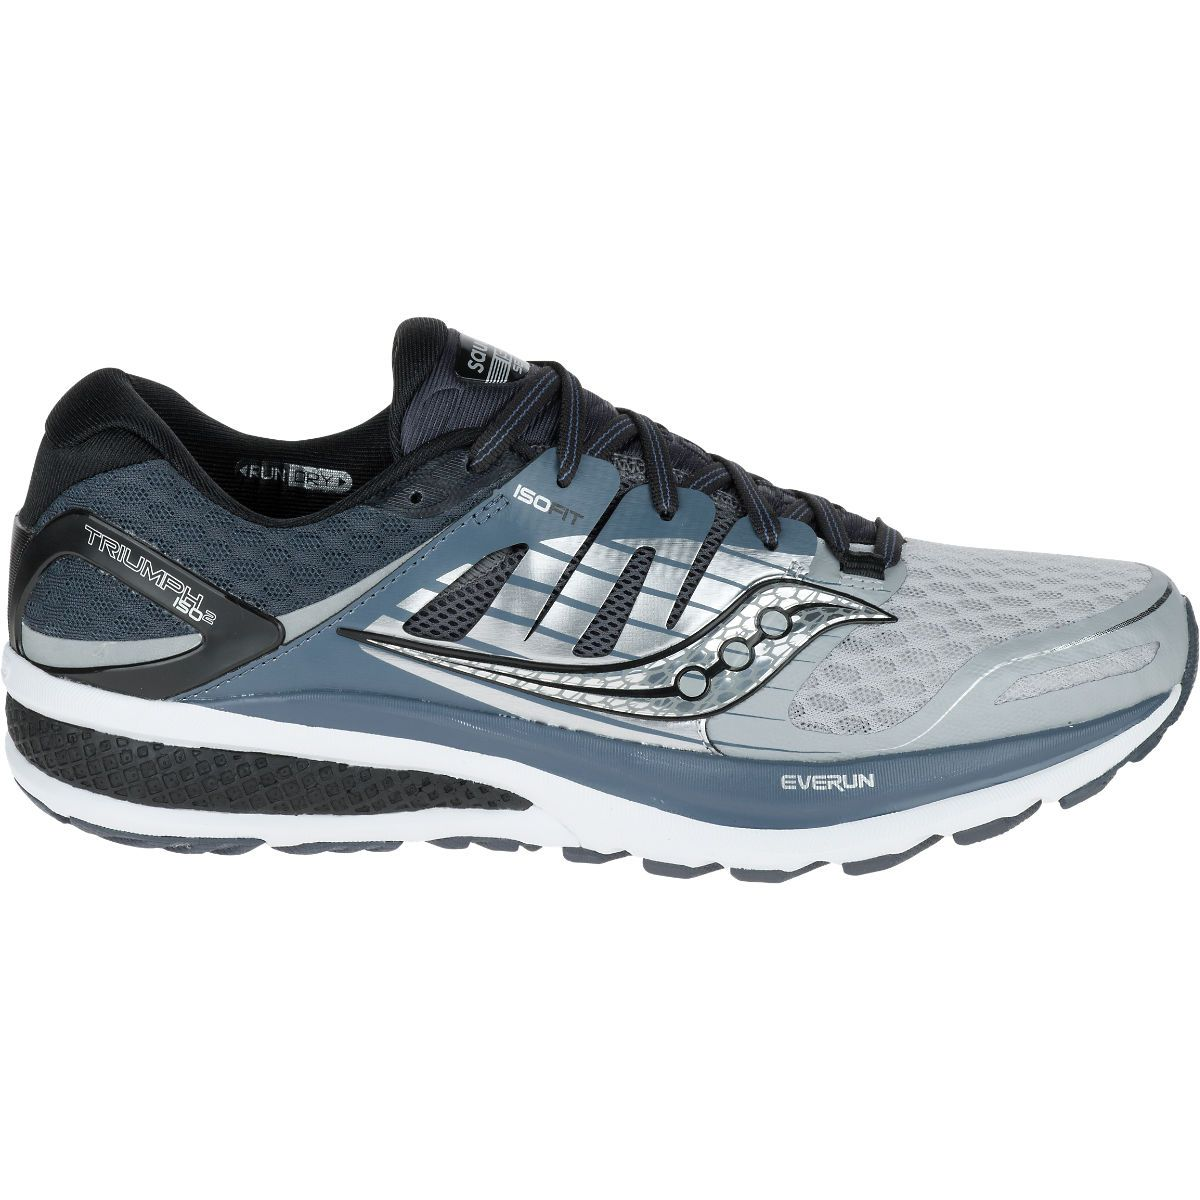 The Saucony Triumph ISO 2 with EVERUN, the latest in cushioning  construction and material innovation